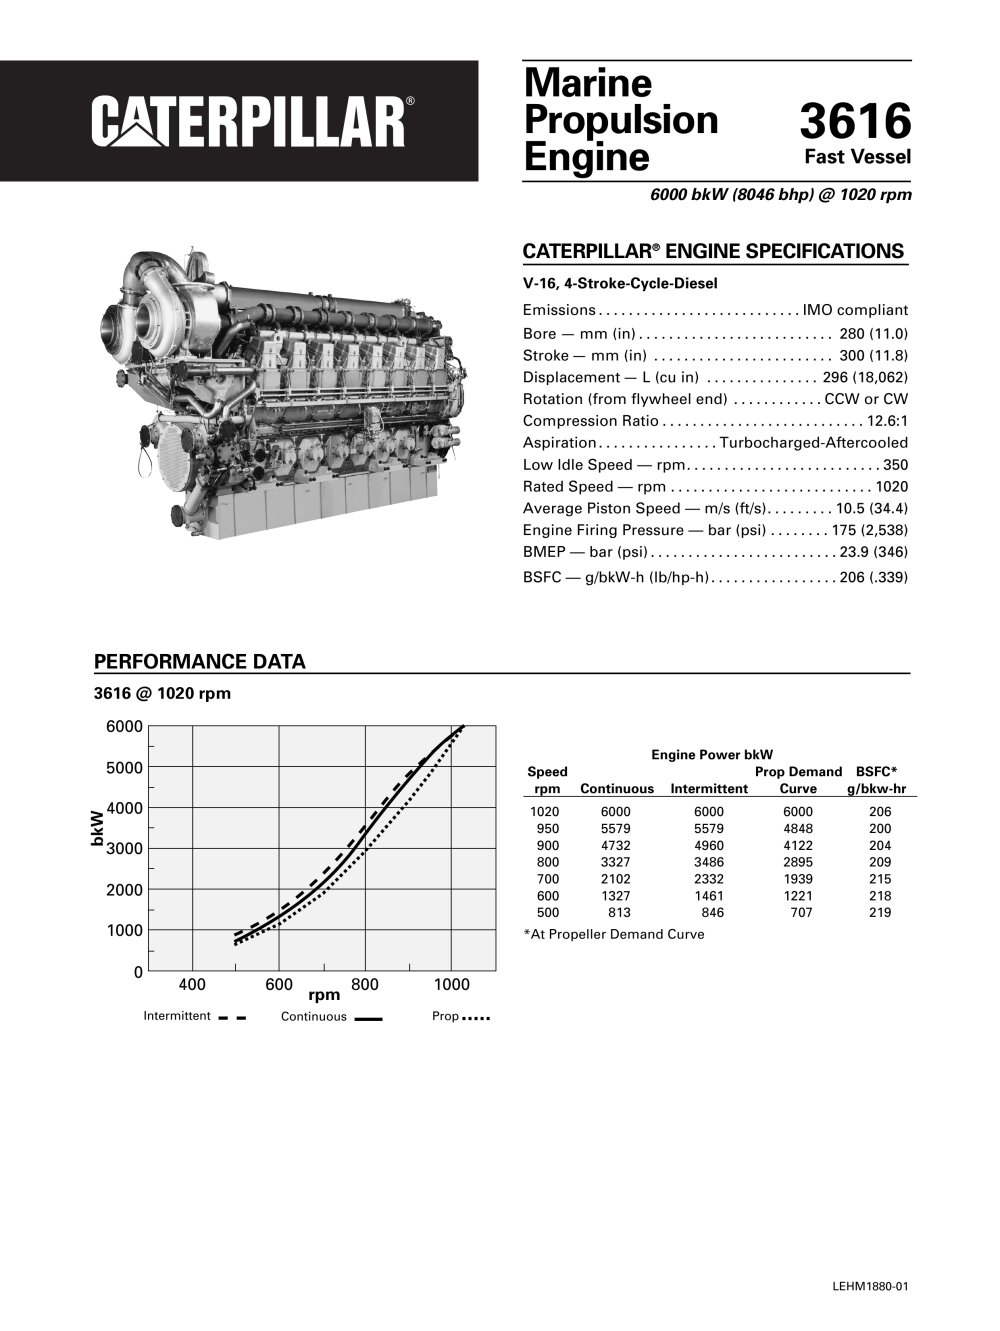 Cat 3616 (8158 mhp) Propulsion Spec Sheets - 1 / 4 Pages